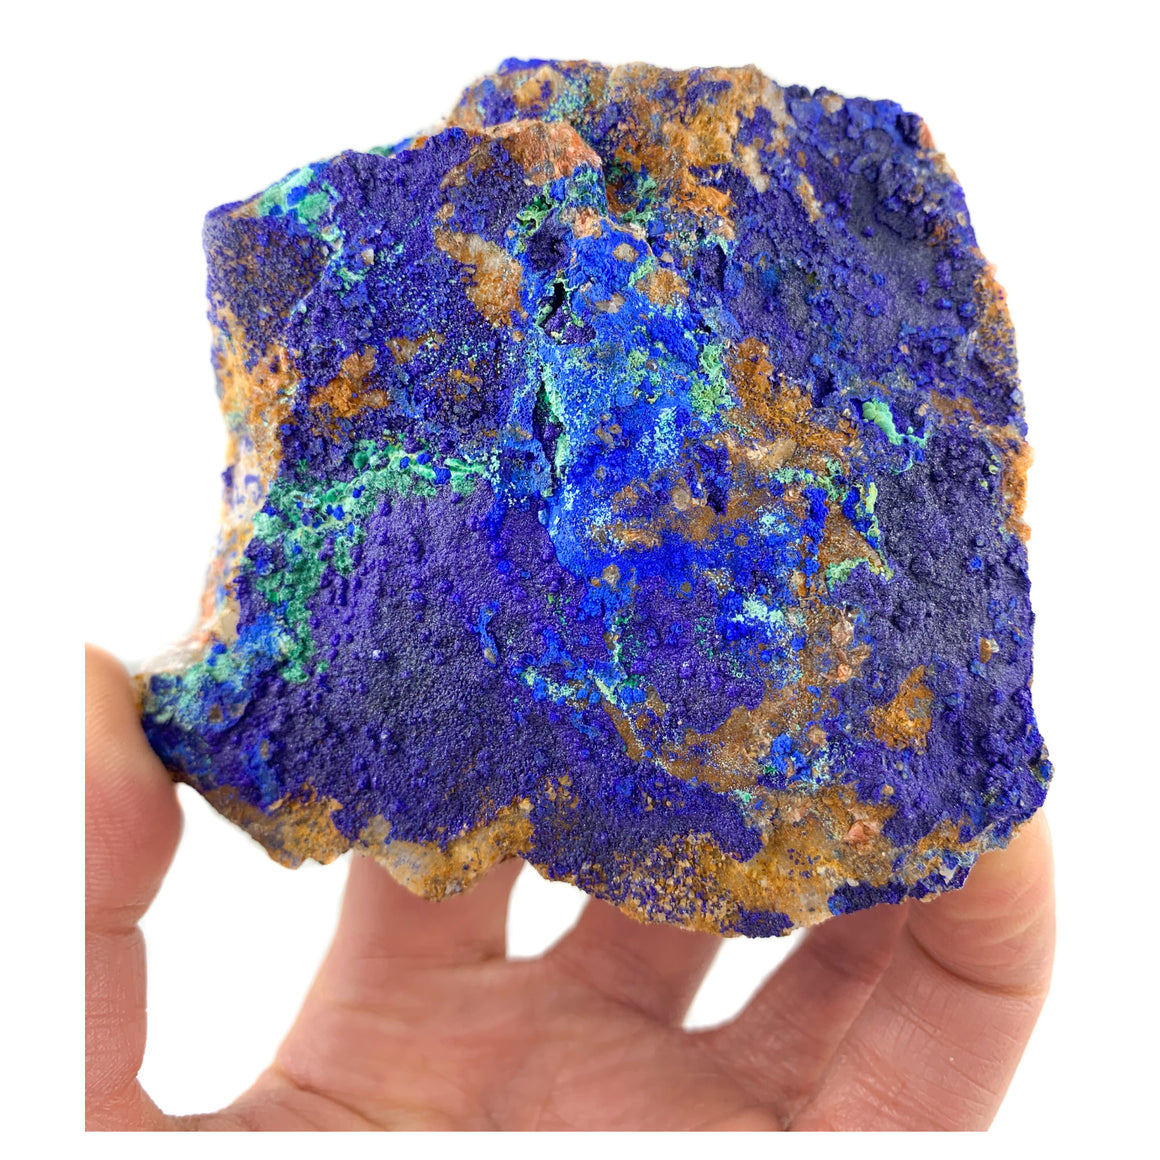 Azurite and Malachite Mineral Specimen